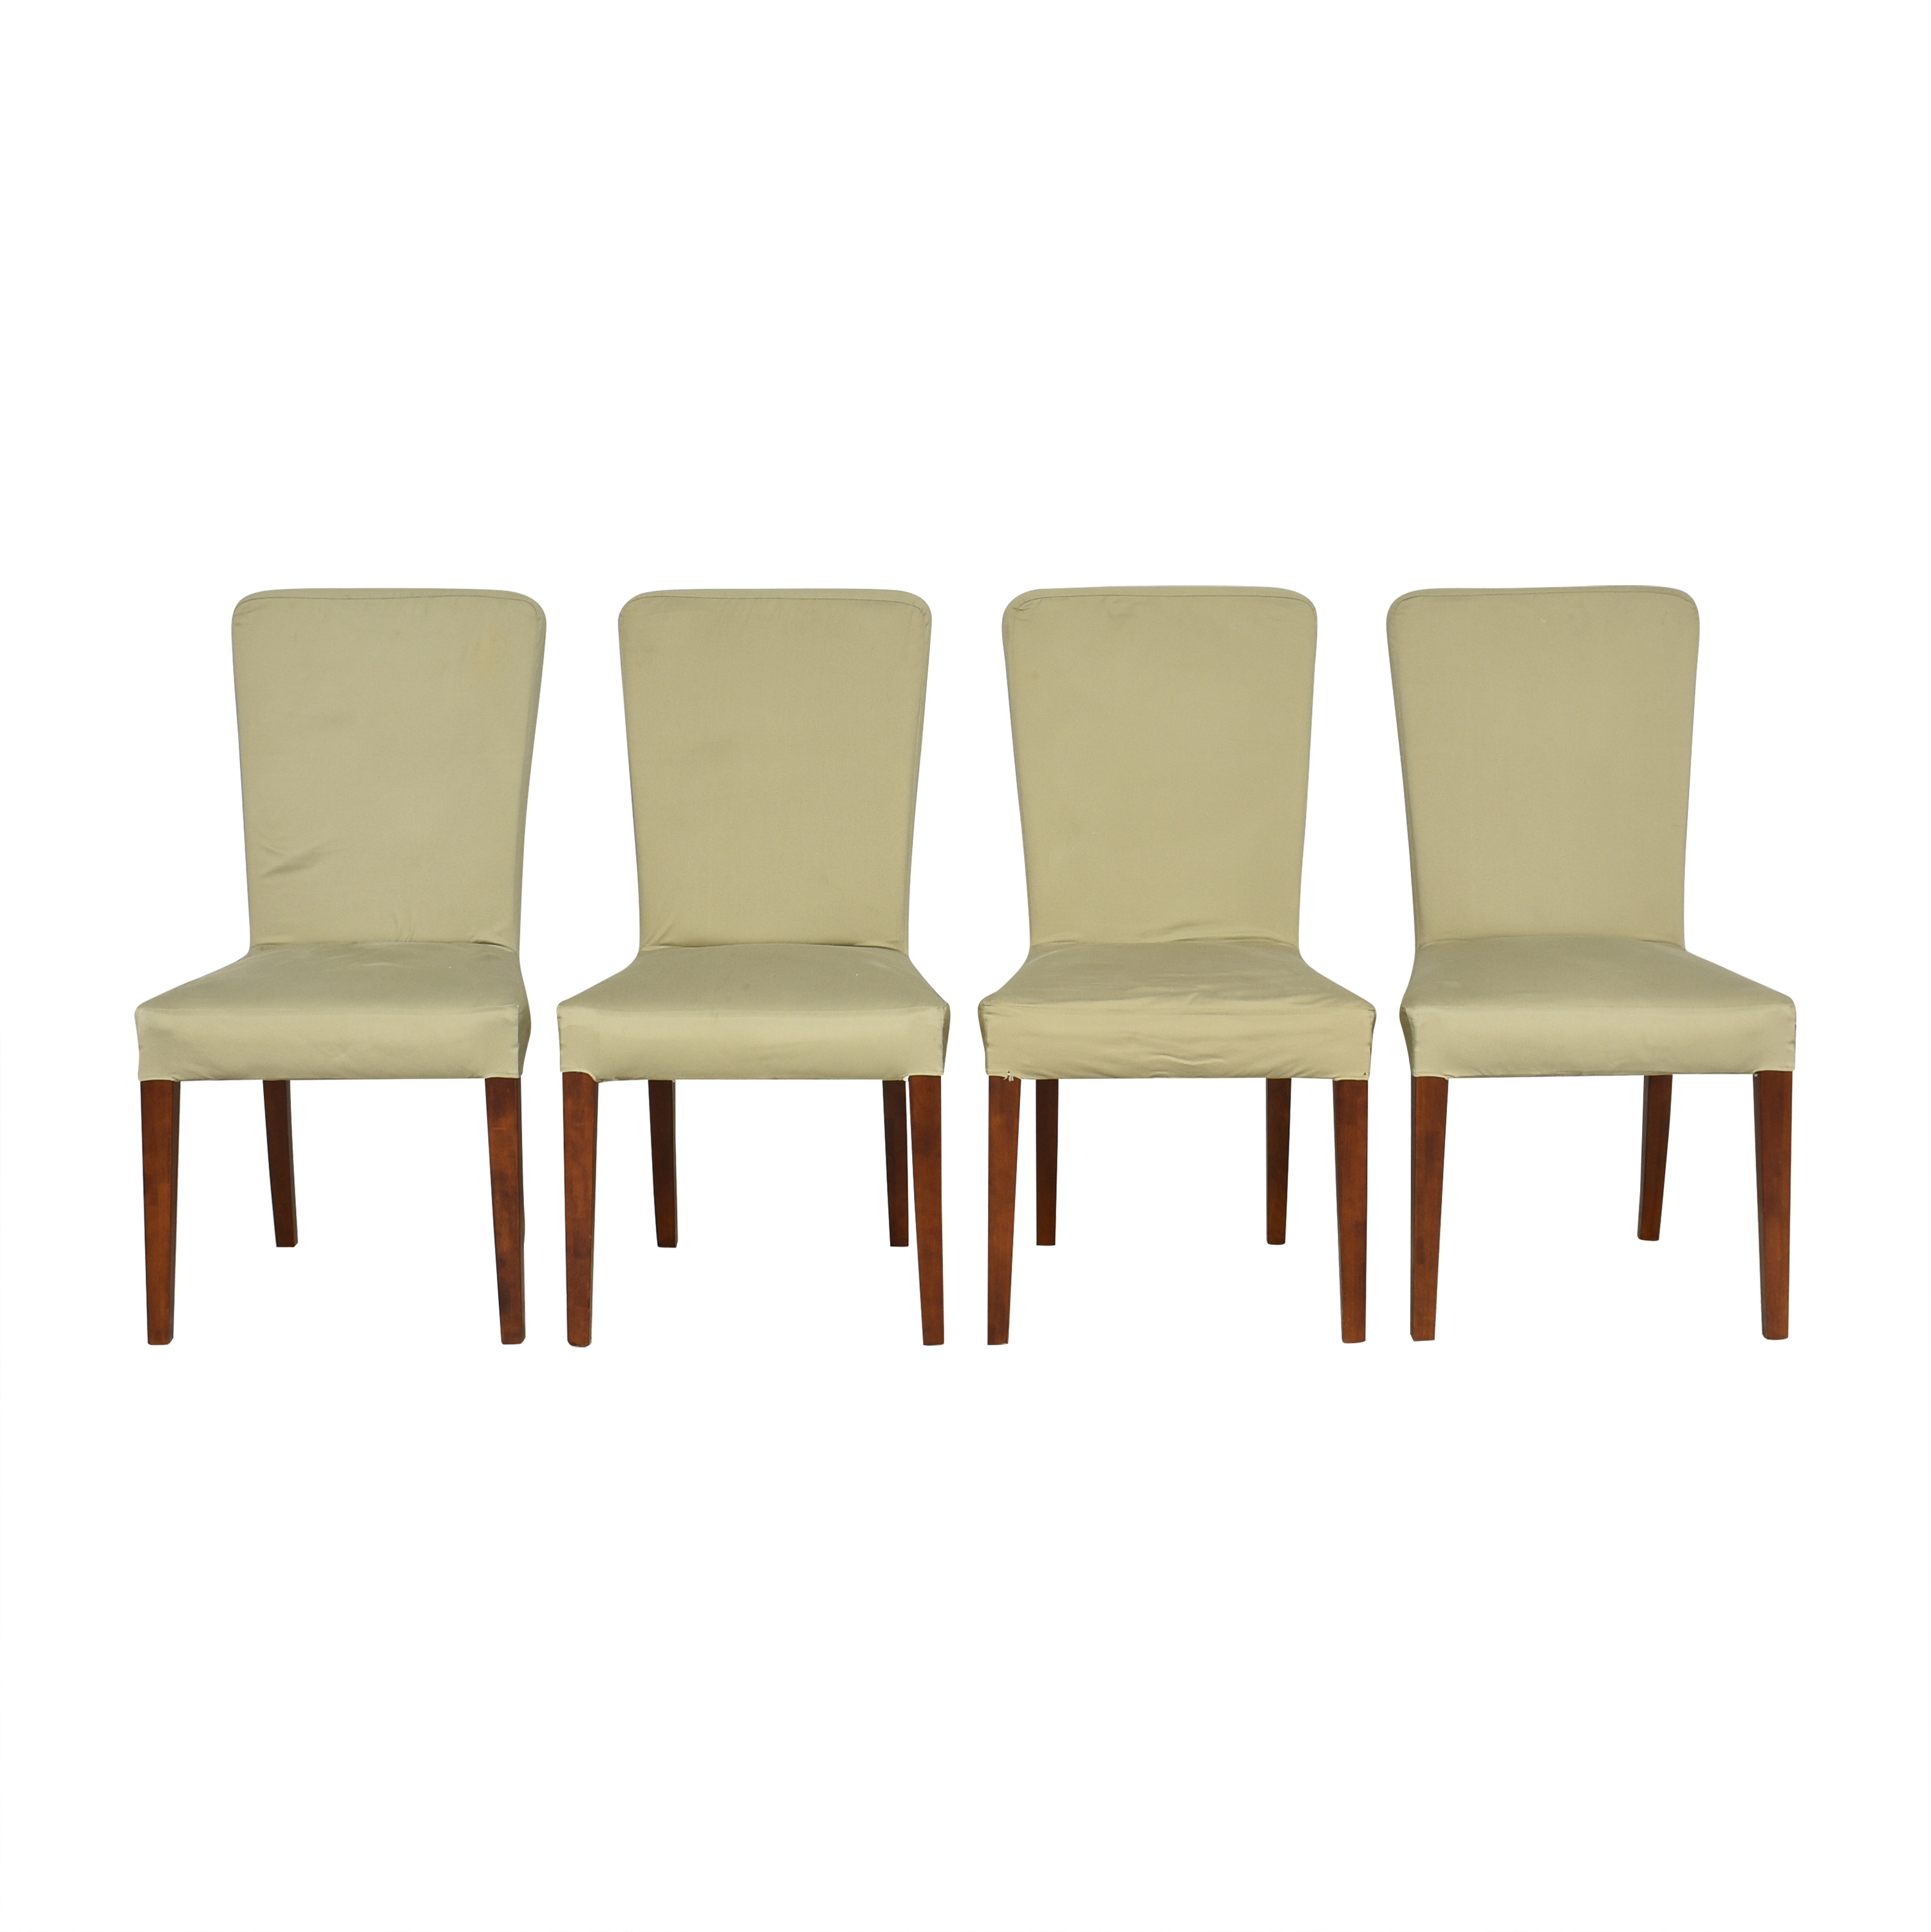 Pottery Barn Megan Slipcovered Dining Side Chairs / Chairs